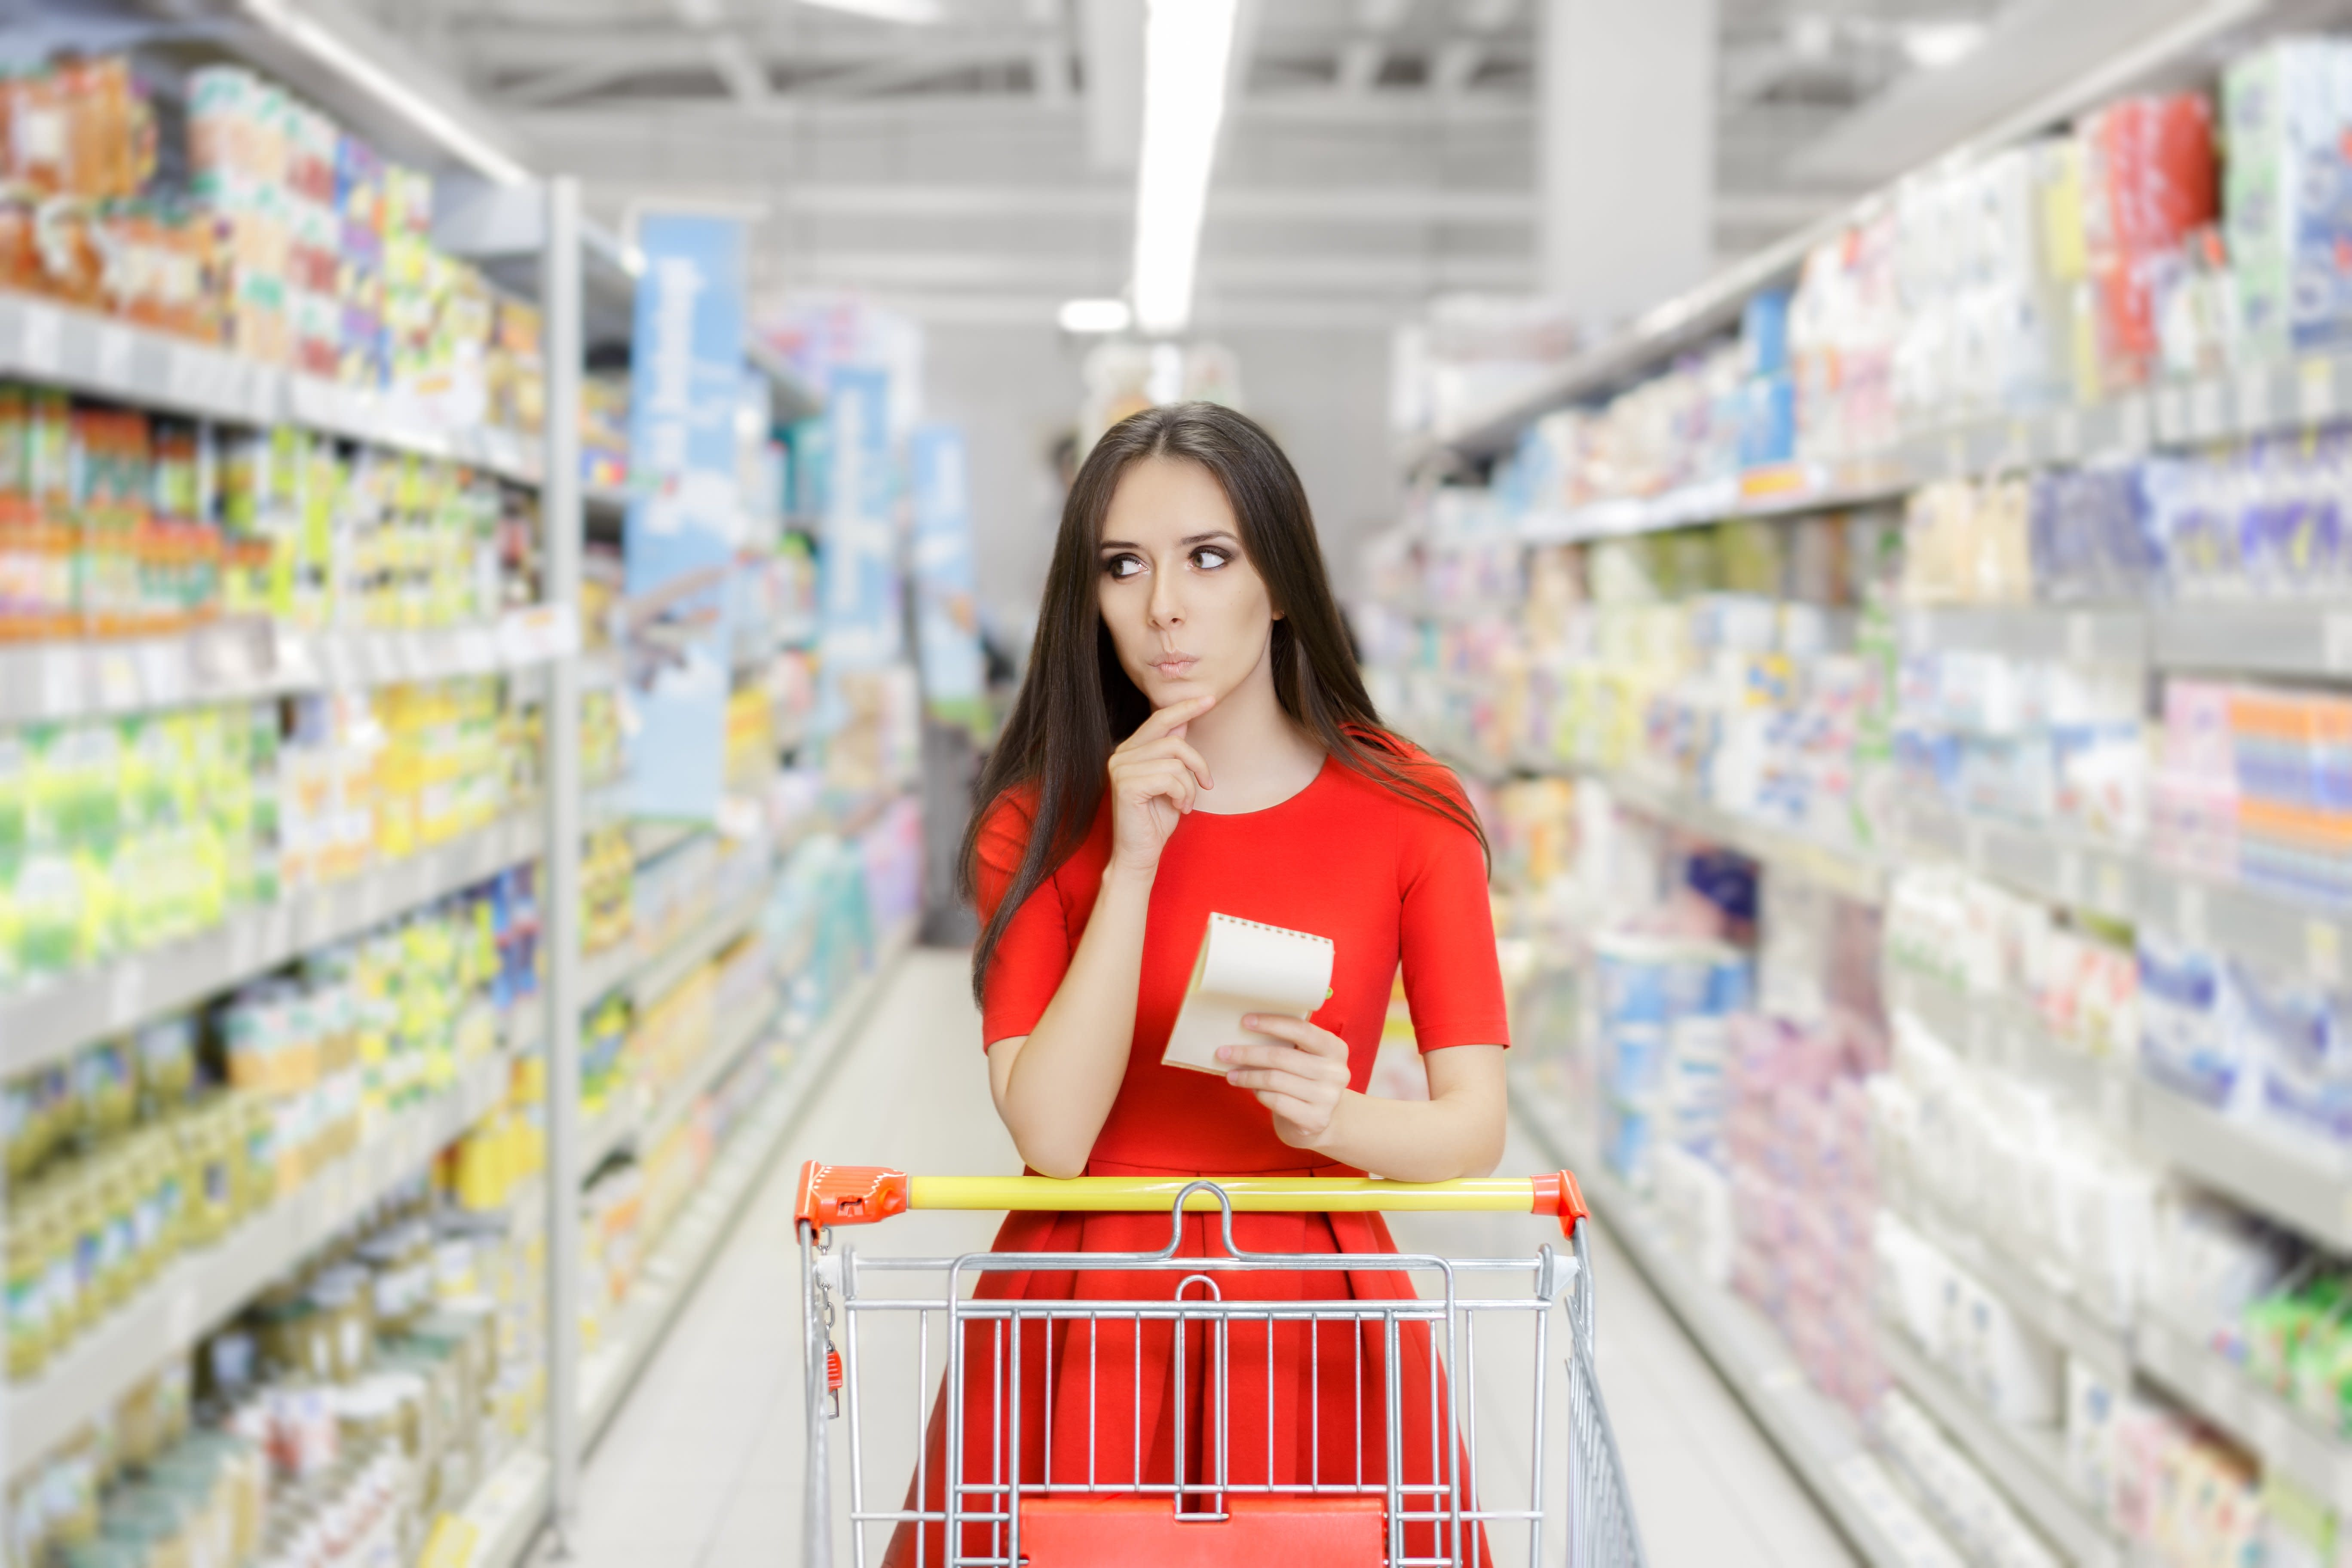 Woman Contemplating Something in Grocery Store Aisle